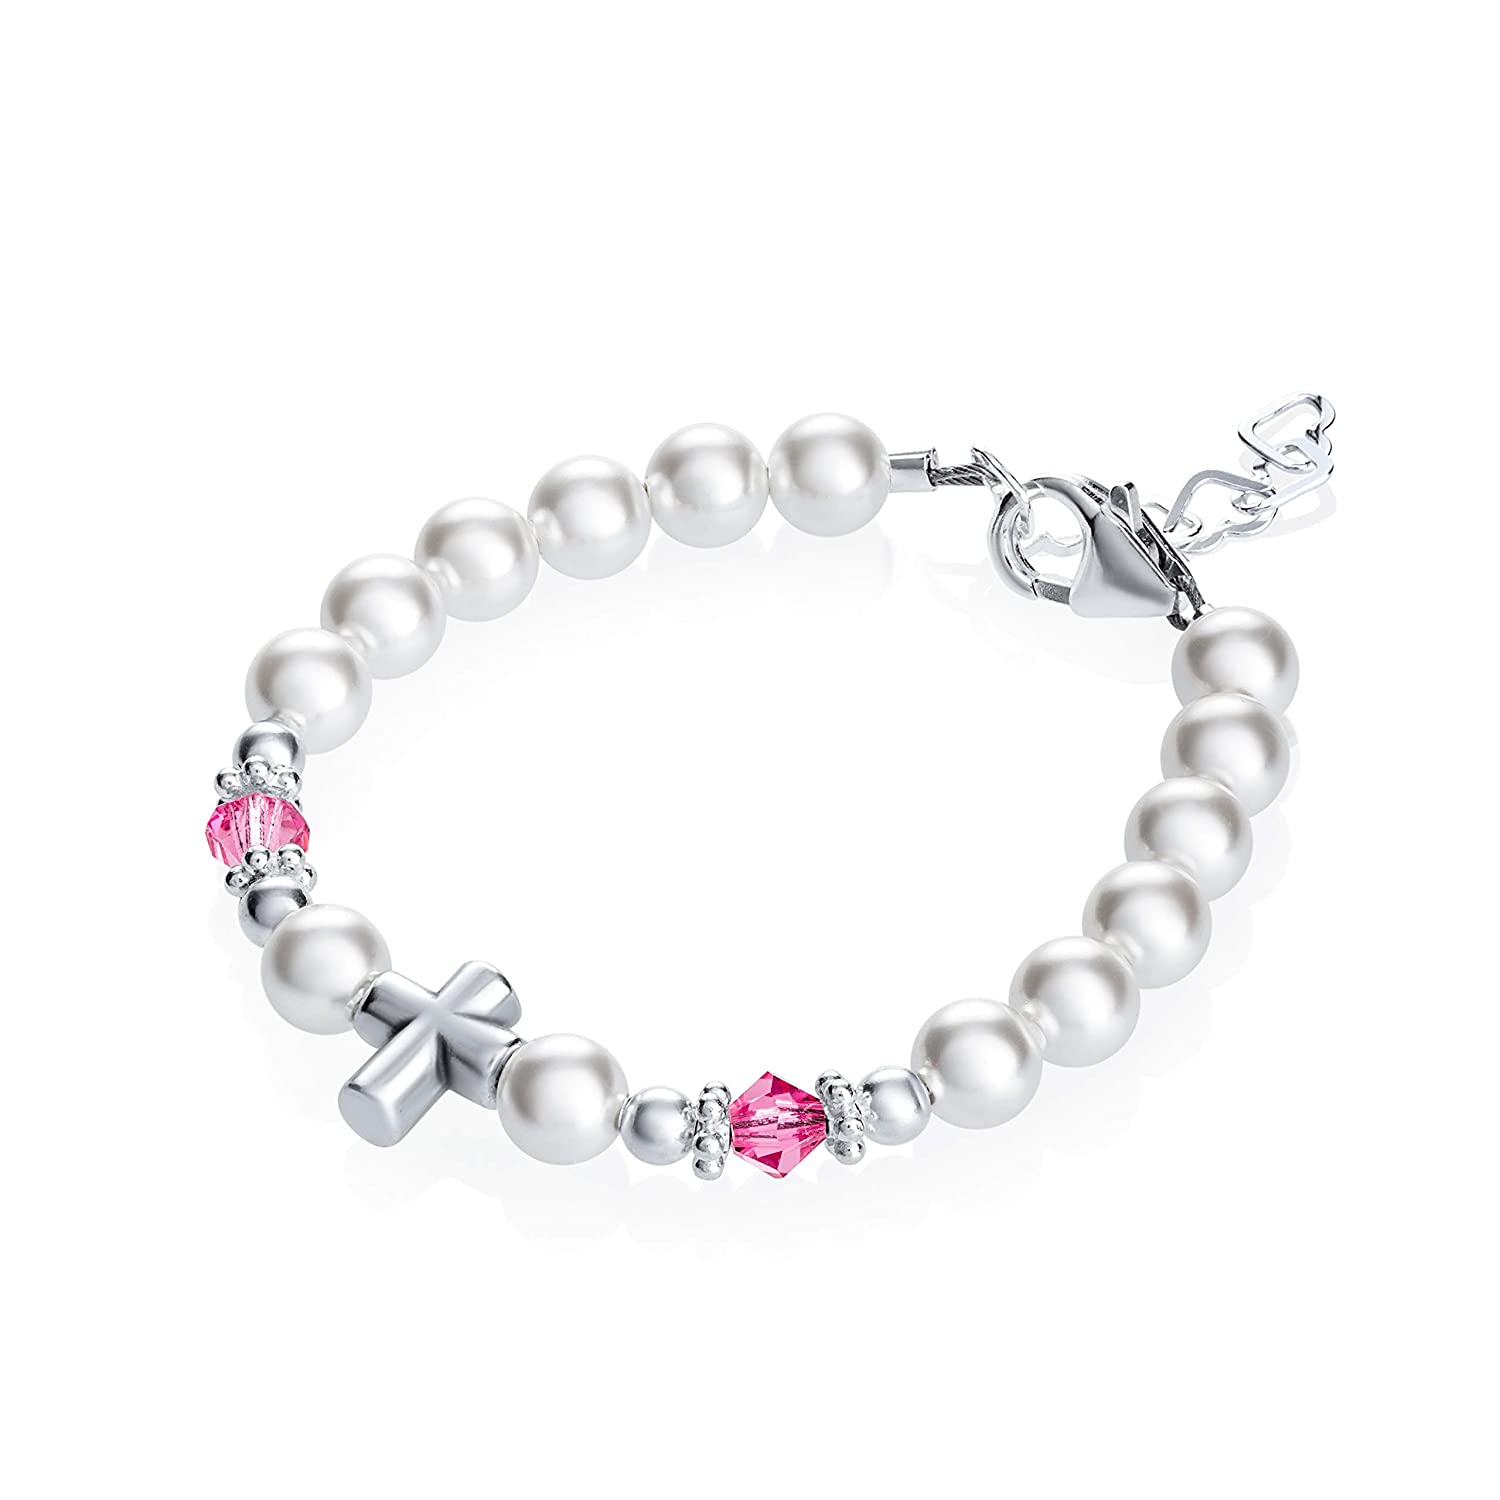 Baptism Sterling Silver Cross Bead with Swarovski White Simulated Pearls Pink Crystals Baby Bracelet (BSCHP_L)